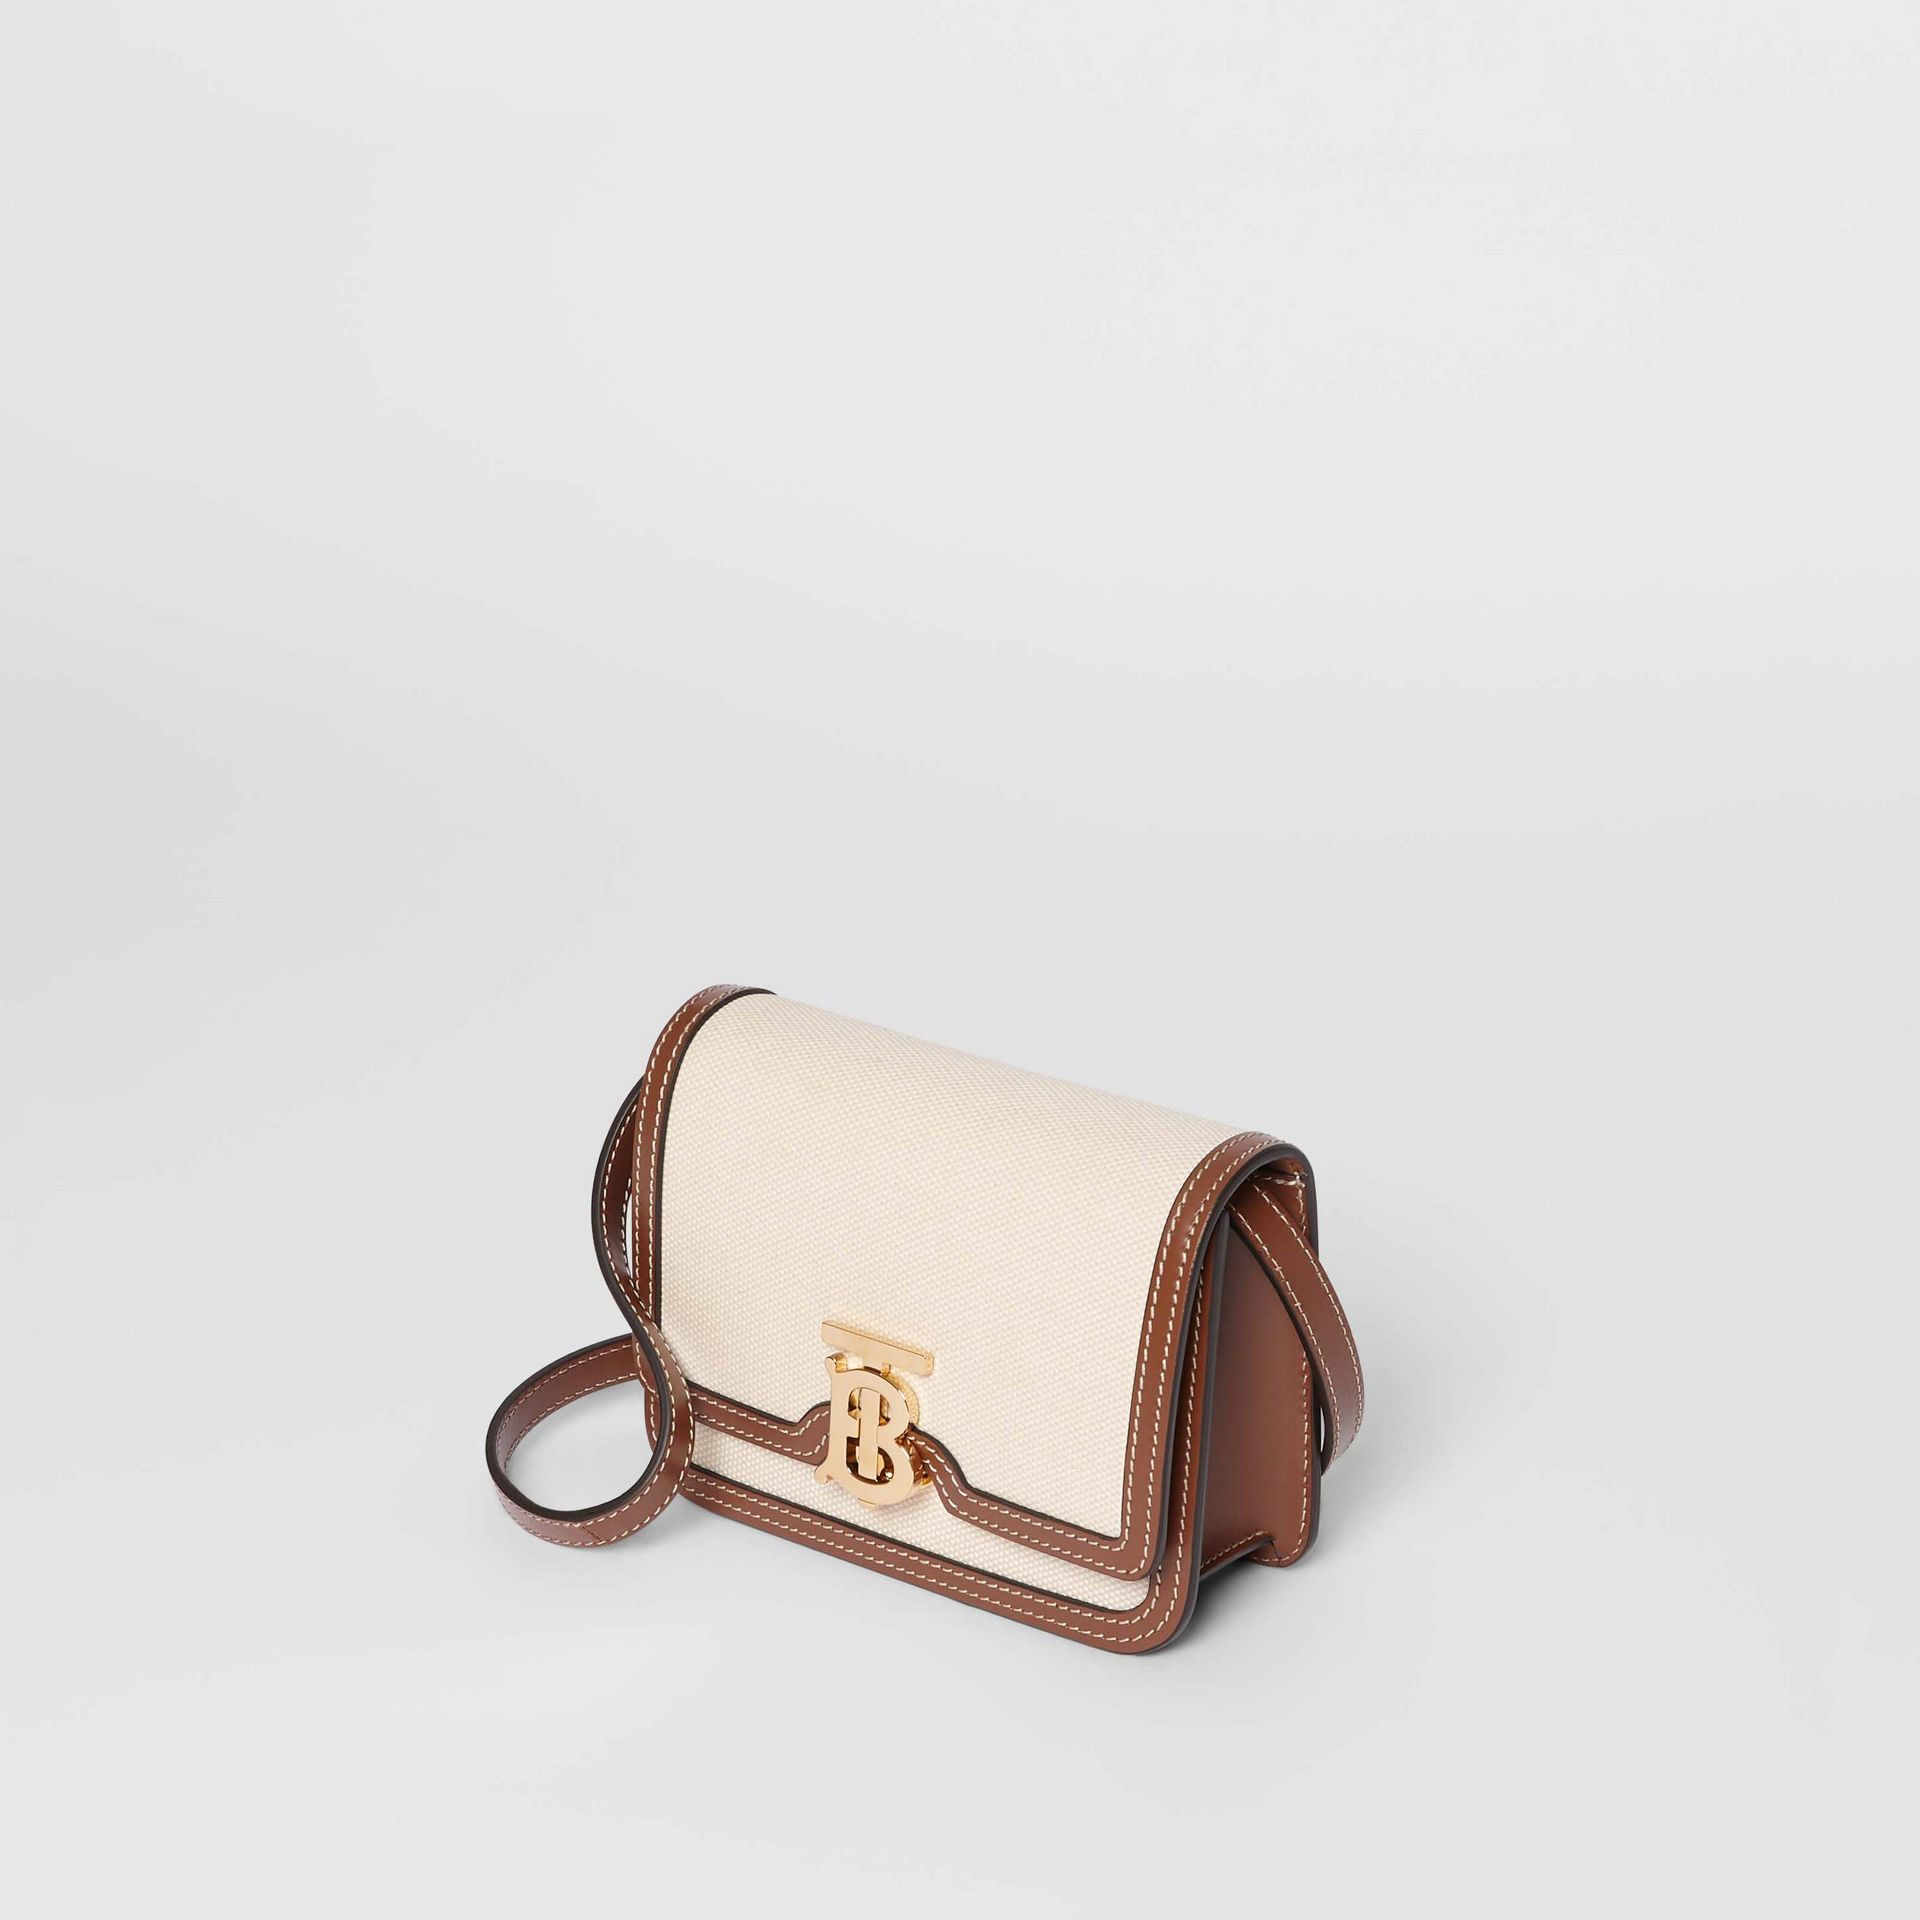 Mini Two-tone Canvas and Leather TB Bag in Natural/malt Brown - Women | Burberry Hong Kong S.A.R - gallery image 3